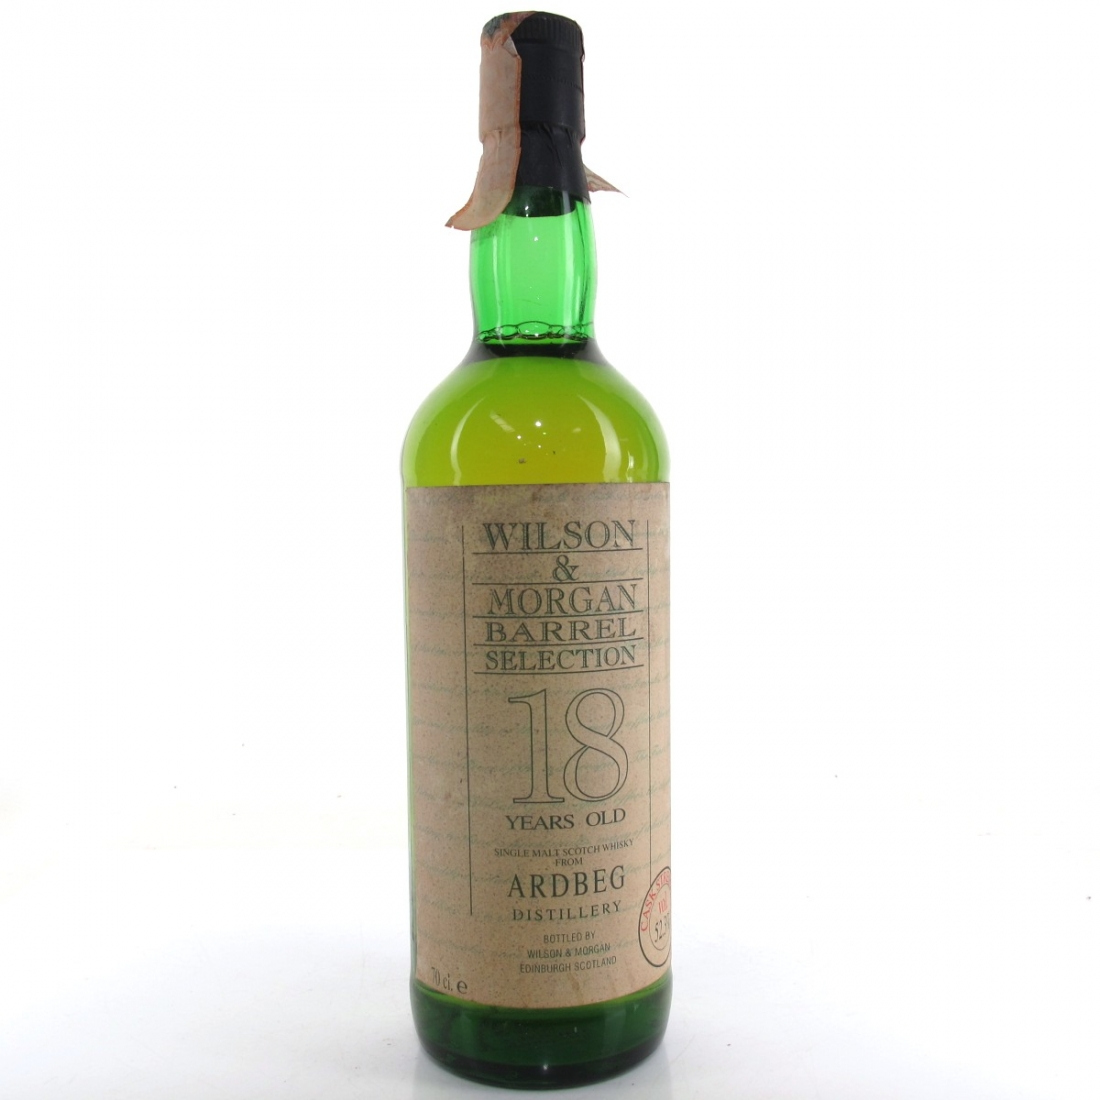 Ardbeg 18 Year Old Wilson and Morgan / Rossi and Rossi